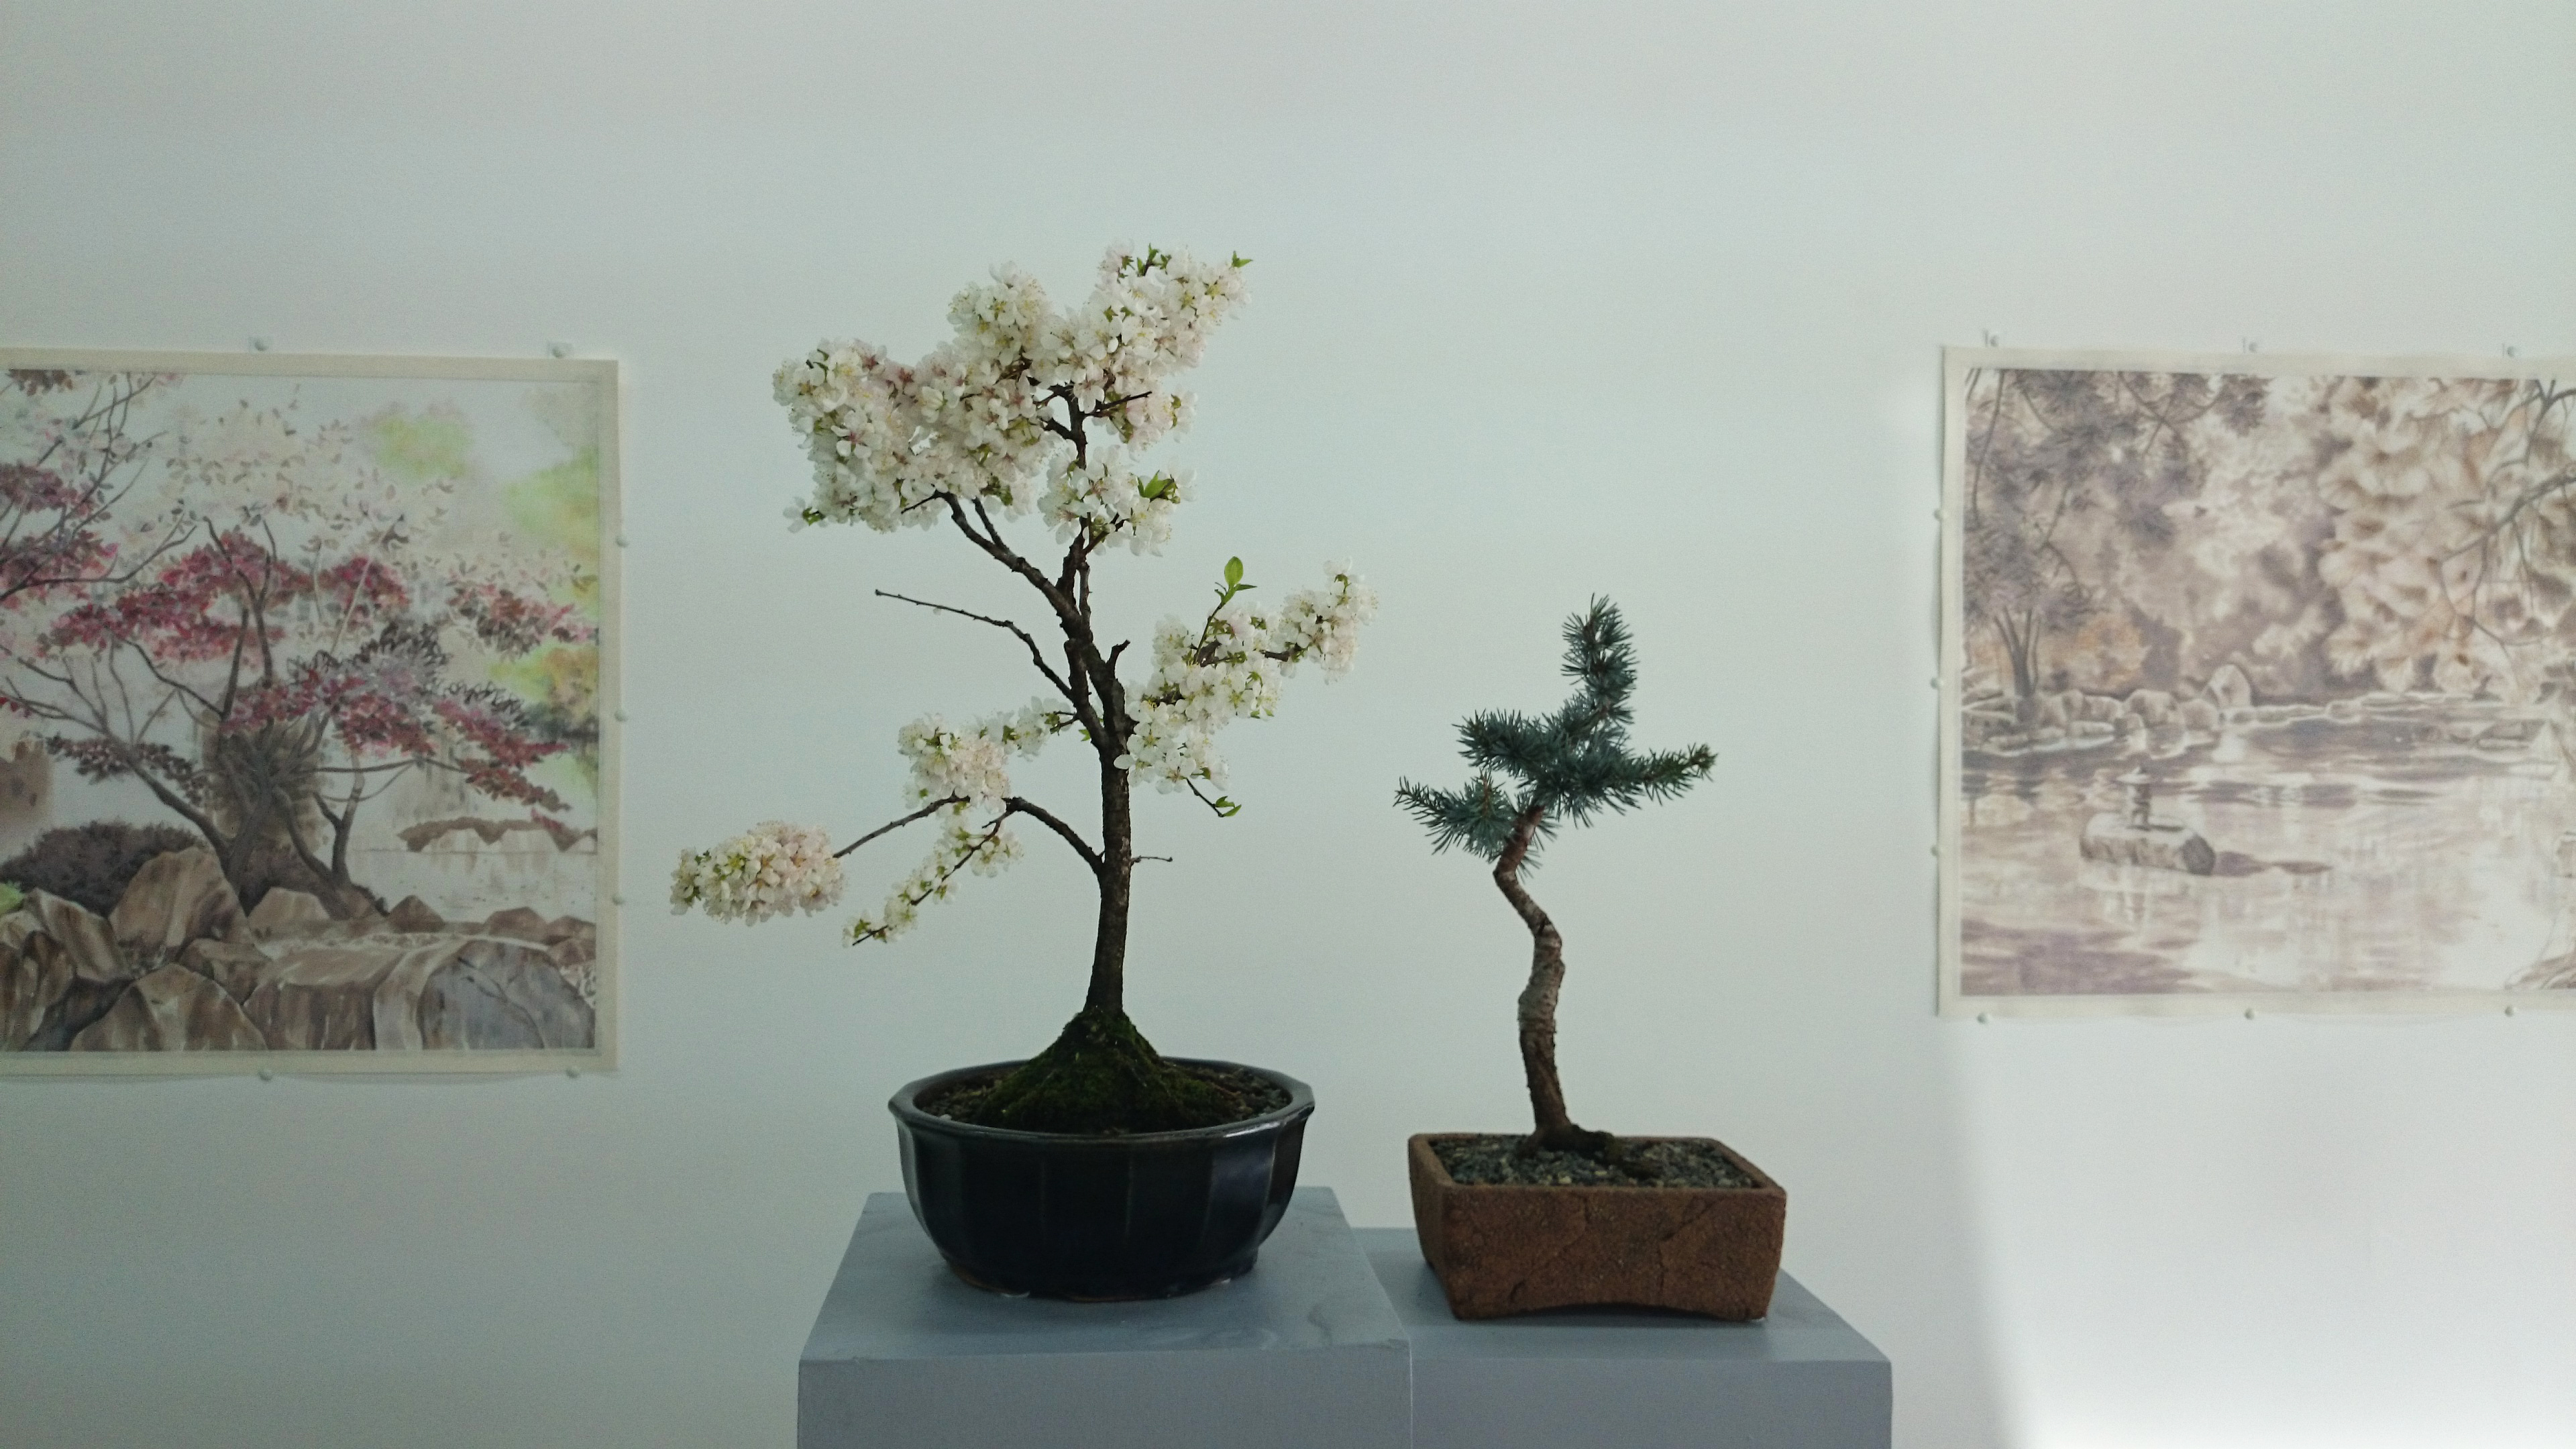 Kristel Smits' Drawings with Thor's bonsai - Miniature Cosmos.jpg